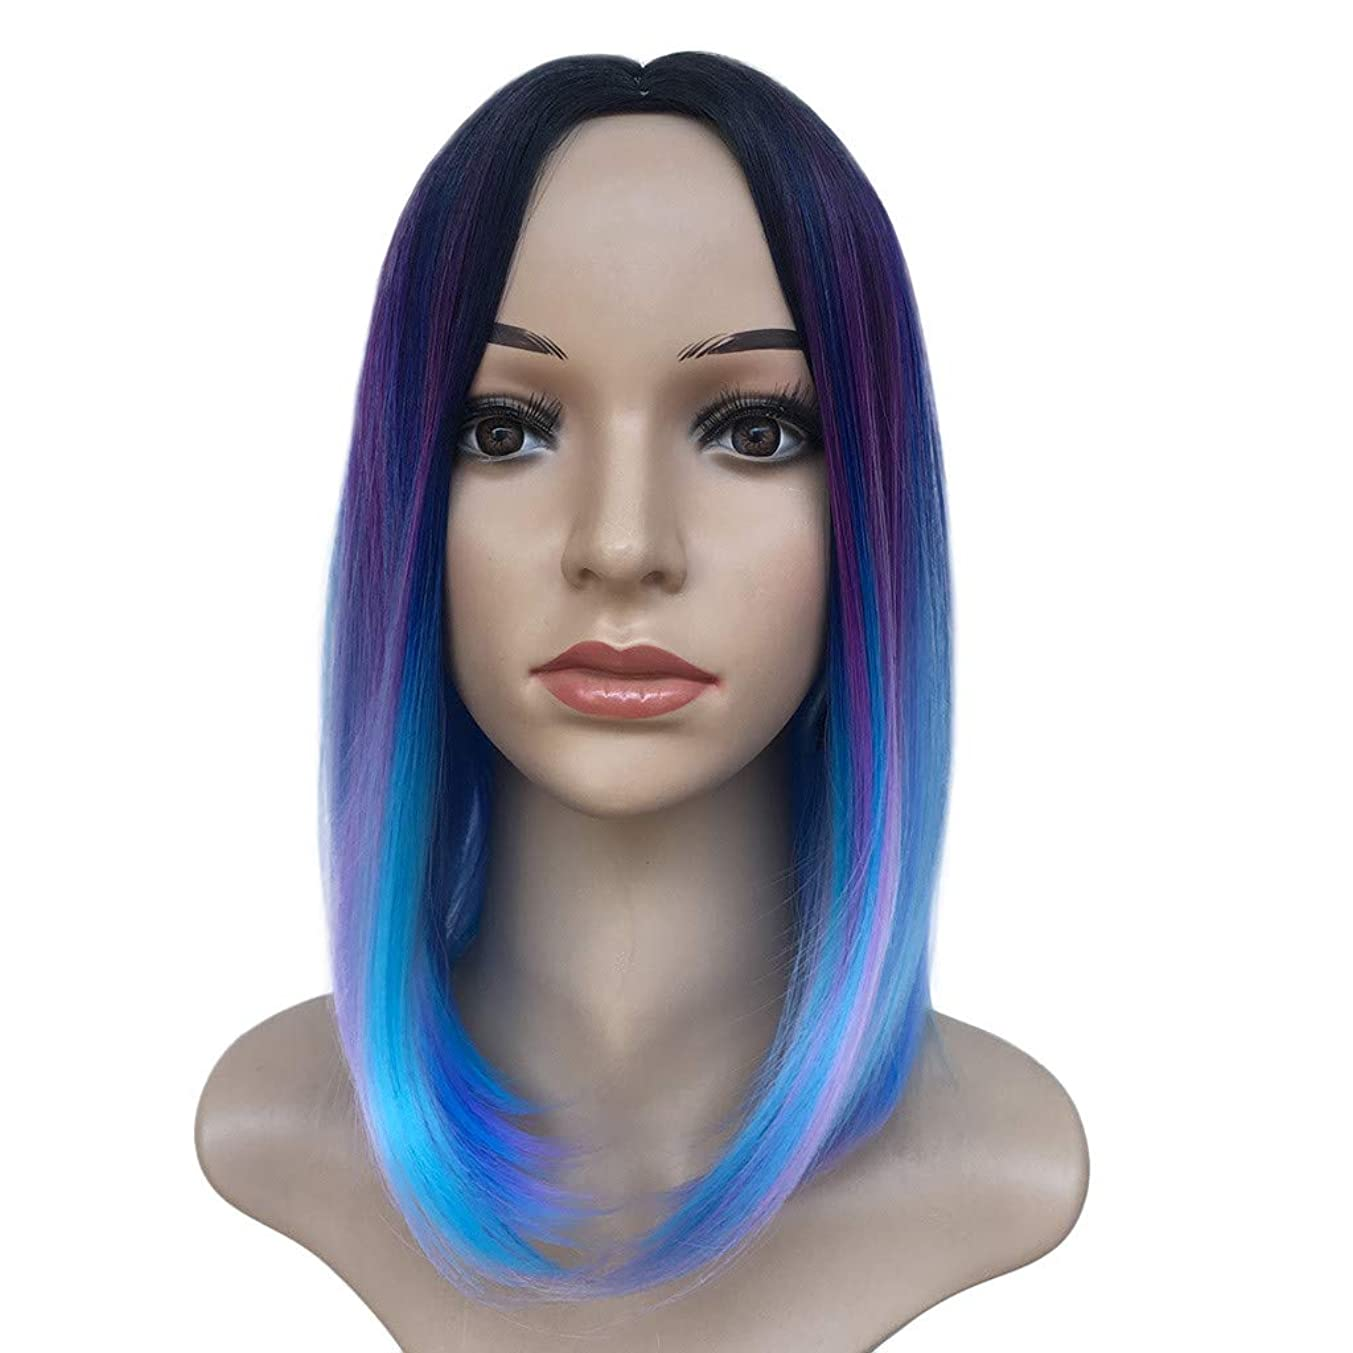 Bob Human Hair Lace Front Wigs, FD-FLY89 Pre Plucked Middle Part with Brazilian Hair Short Silky Straight for Women